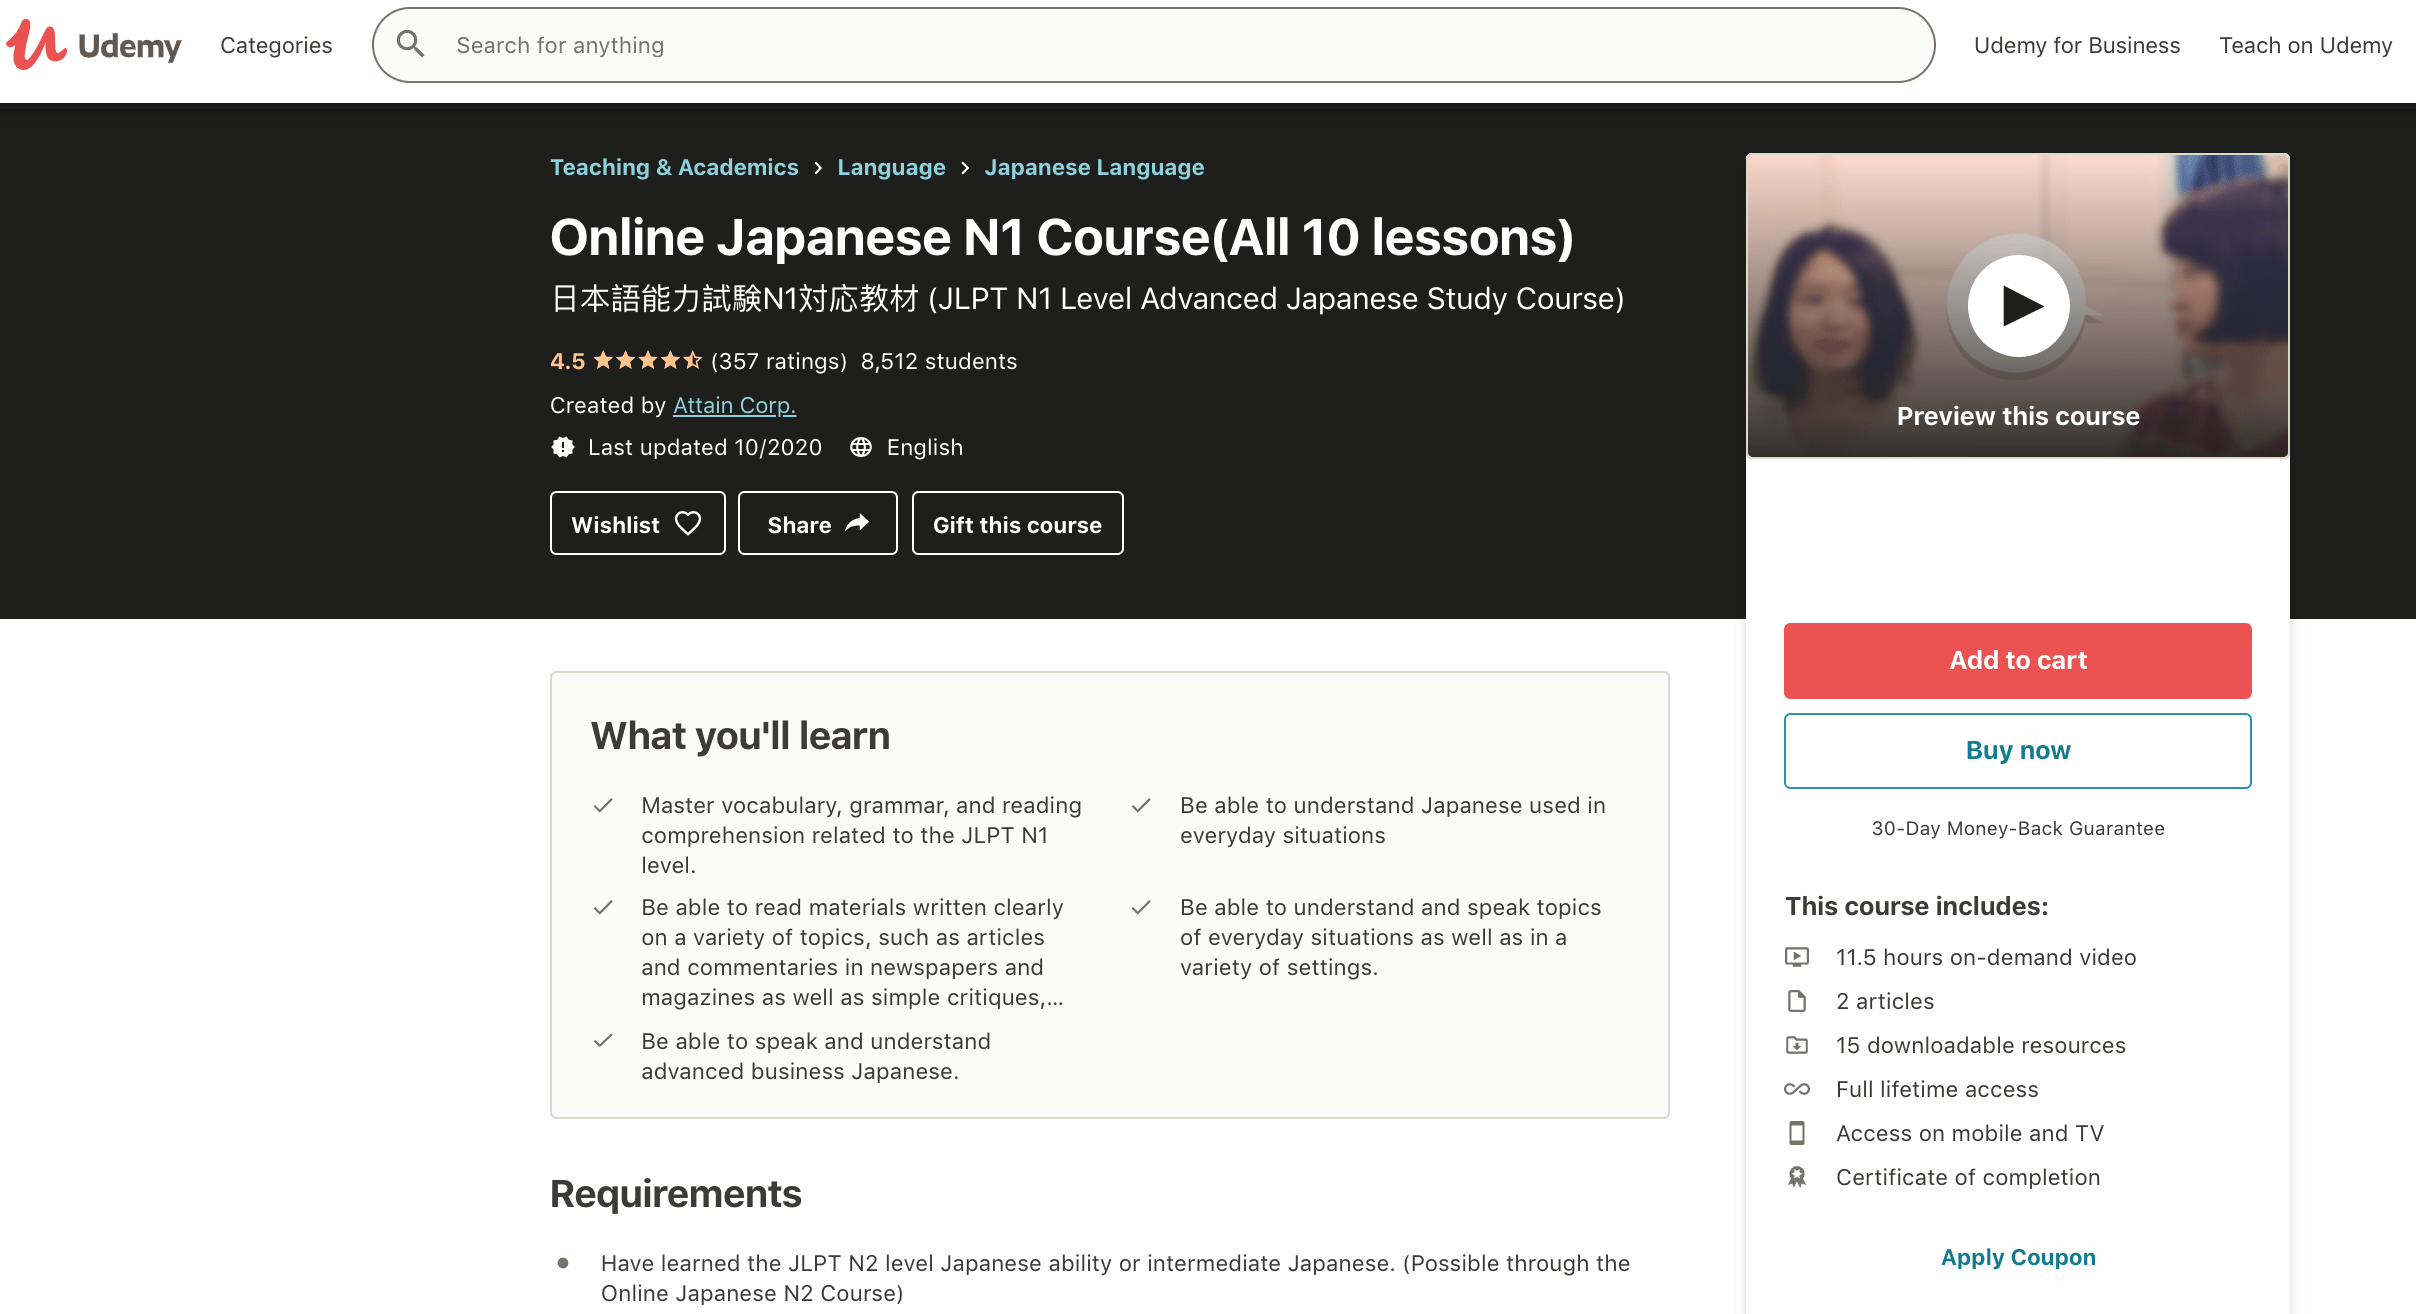 Online-Japanese-N1-Course-All-10-lessons-Udemy